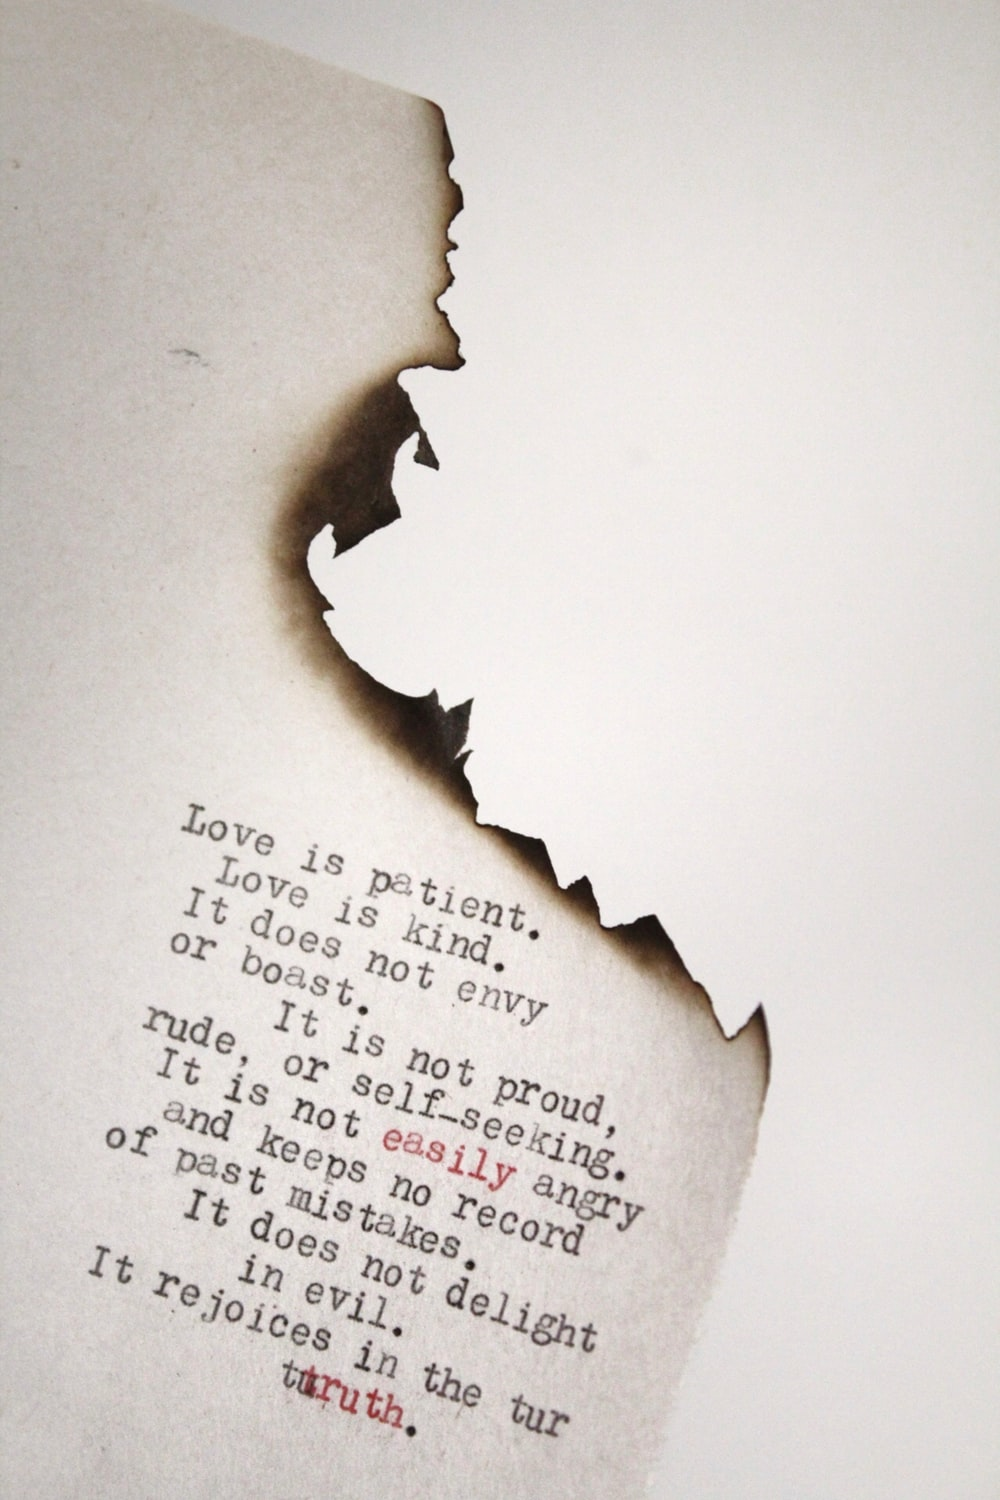 Love is patient Love is kind printed on burned paper